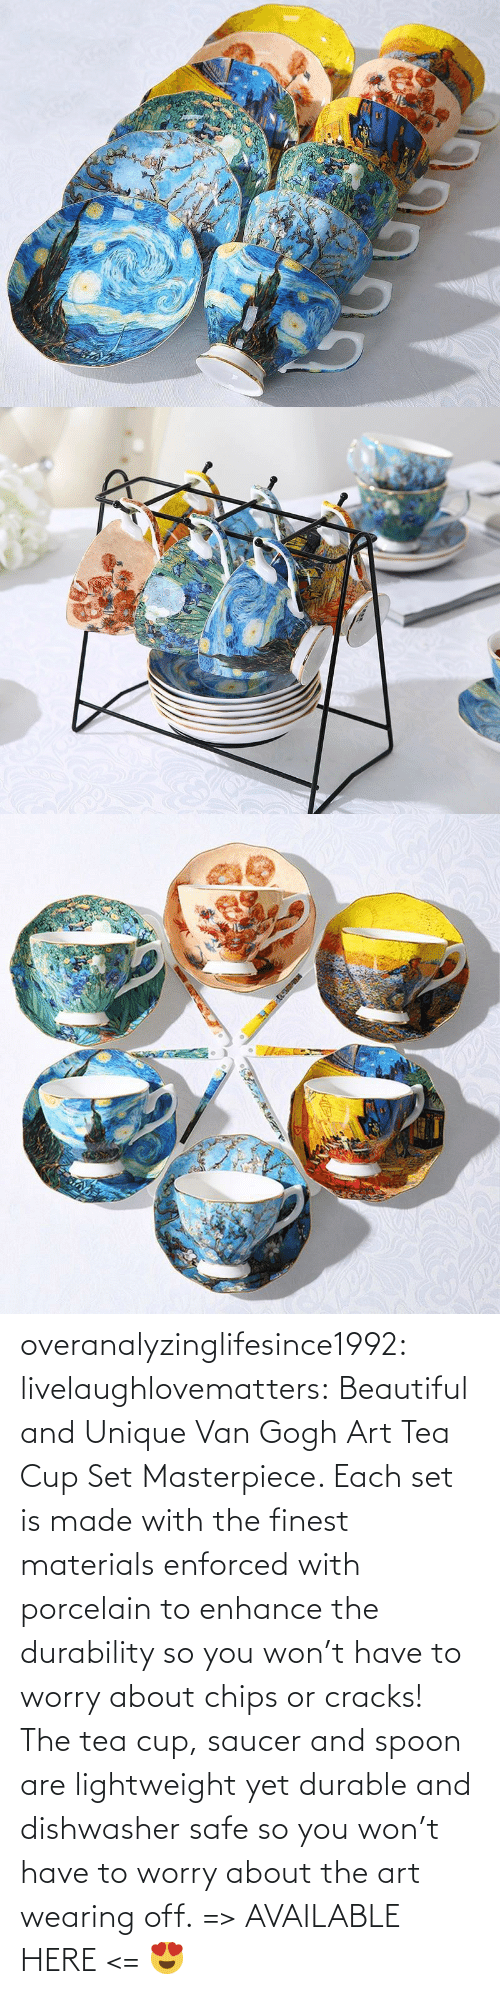 Finest: overanalyzinglifesince1992: livelaughlovematters:  Beautiful and Unique Van Gogh Art Tea Cup Set Masterpiece. Each set is made with the finest materials enforced with porcelain to enhance the durability so you won't have to worry about chips or cracks! The tea cup, saucer and spoon are lightweight yet durable and dishwasher safe so you won't have to worry about the art wearing off. => AVAILABLE HERE <=    😍